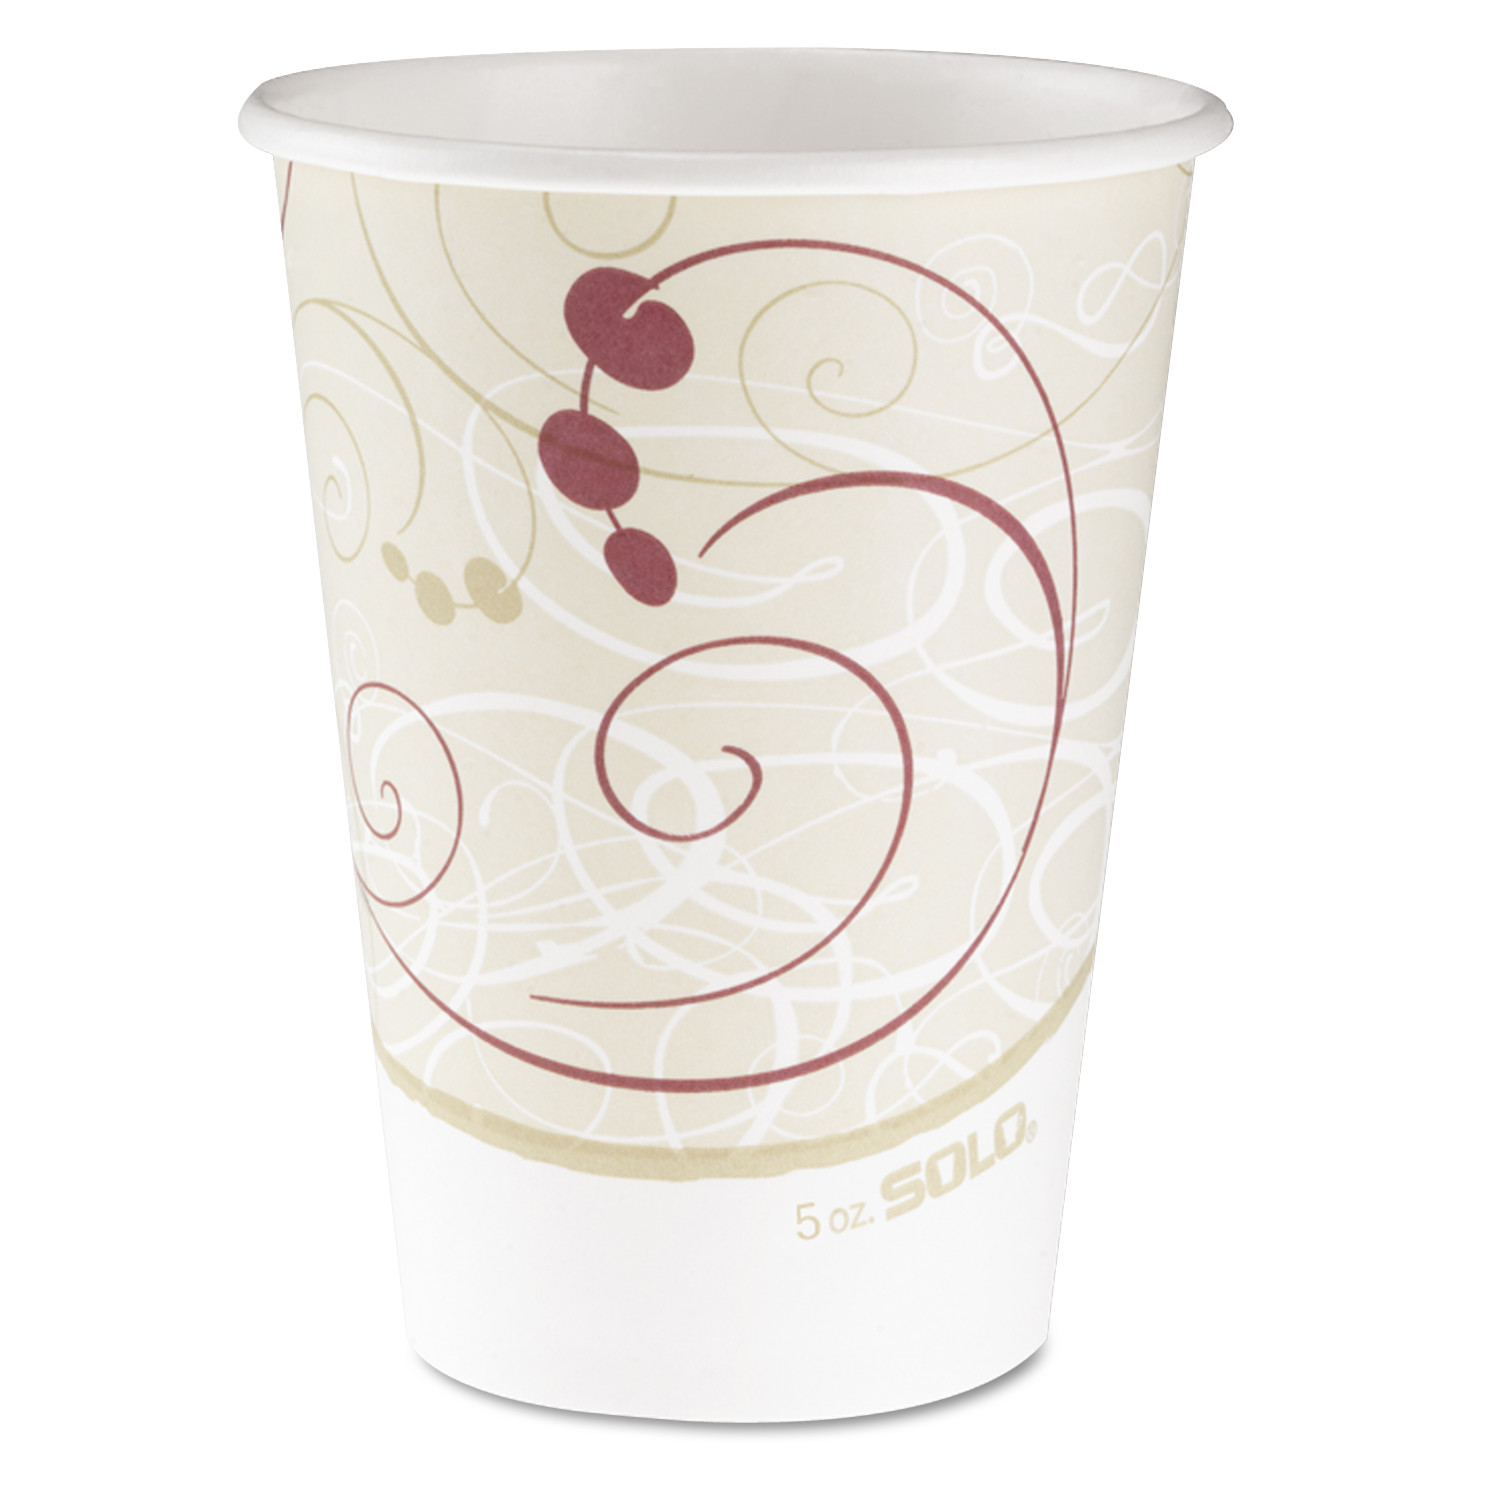 SOLO Cup Company Hot Cups, Symphony Design, 12oz, Beige, 1000/Carton